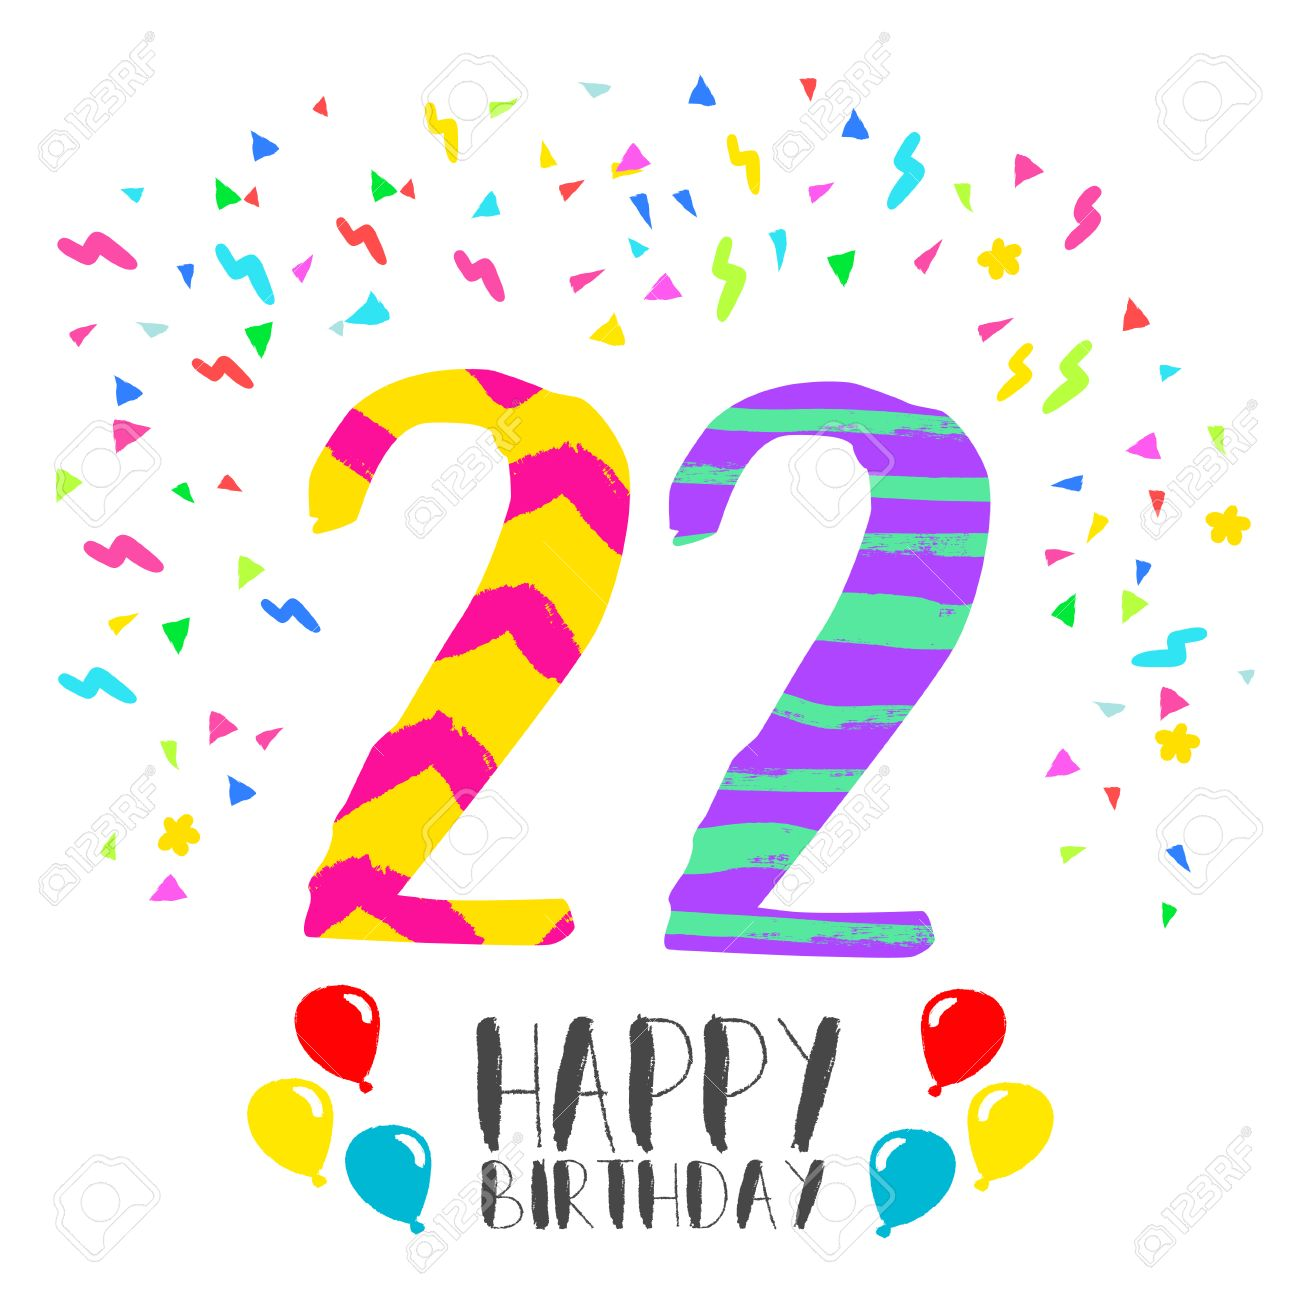 Happy Birthday Number 22 Greeting Card For Twenty Two Year In Fun Art Style With